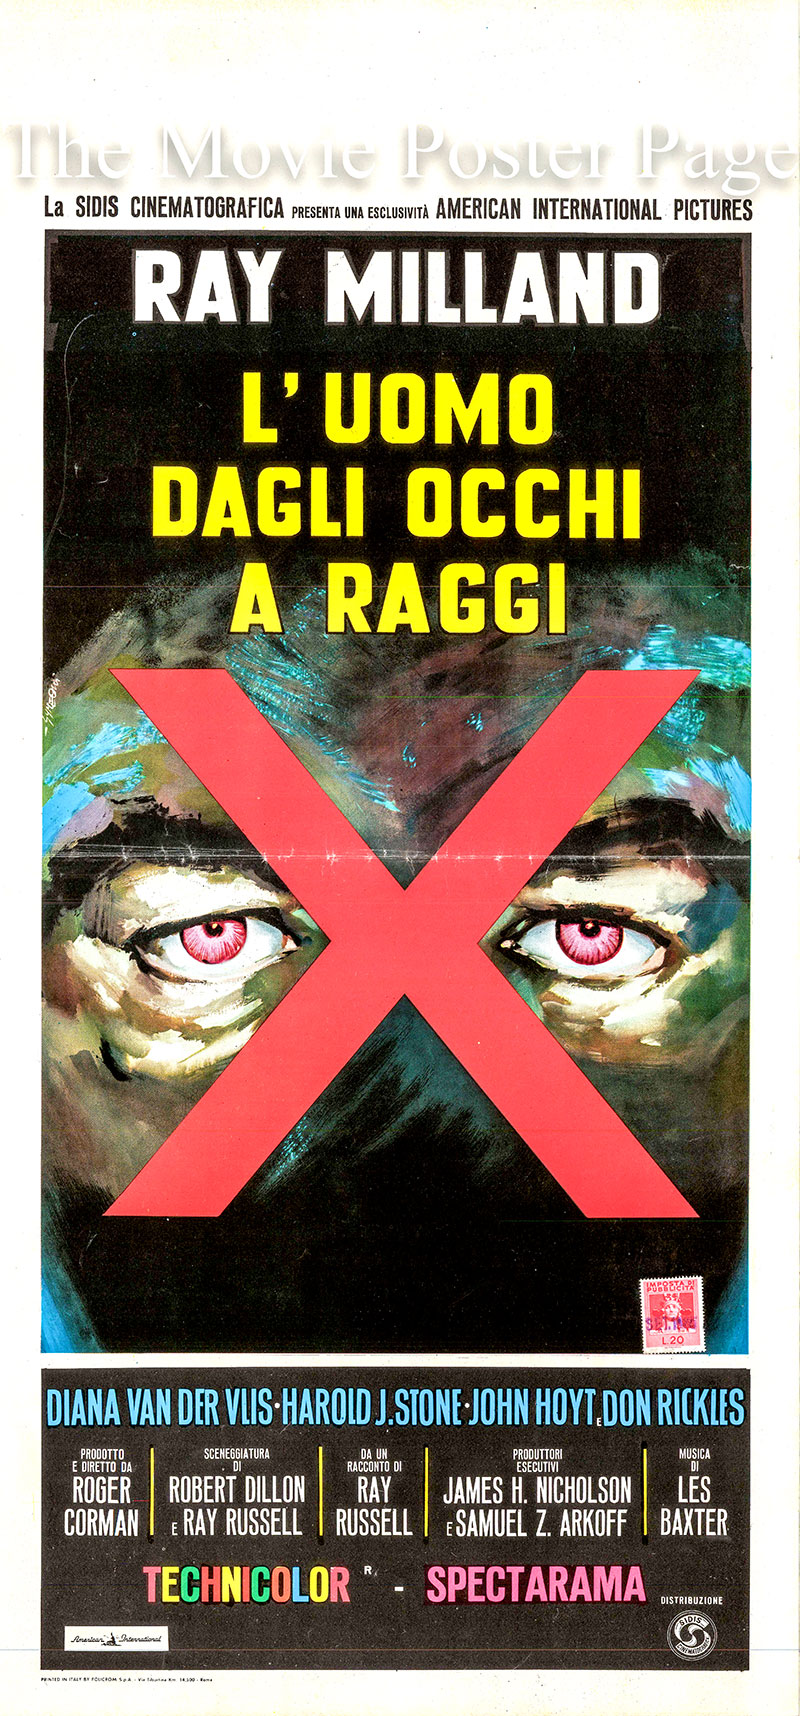 Pictured is an Italian locandina for the 1963 Roger Corman film X: The Man with the X-Ray Eyes starring Ray Milland as Dr. James Xavier.